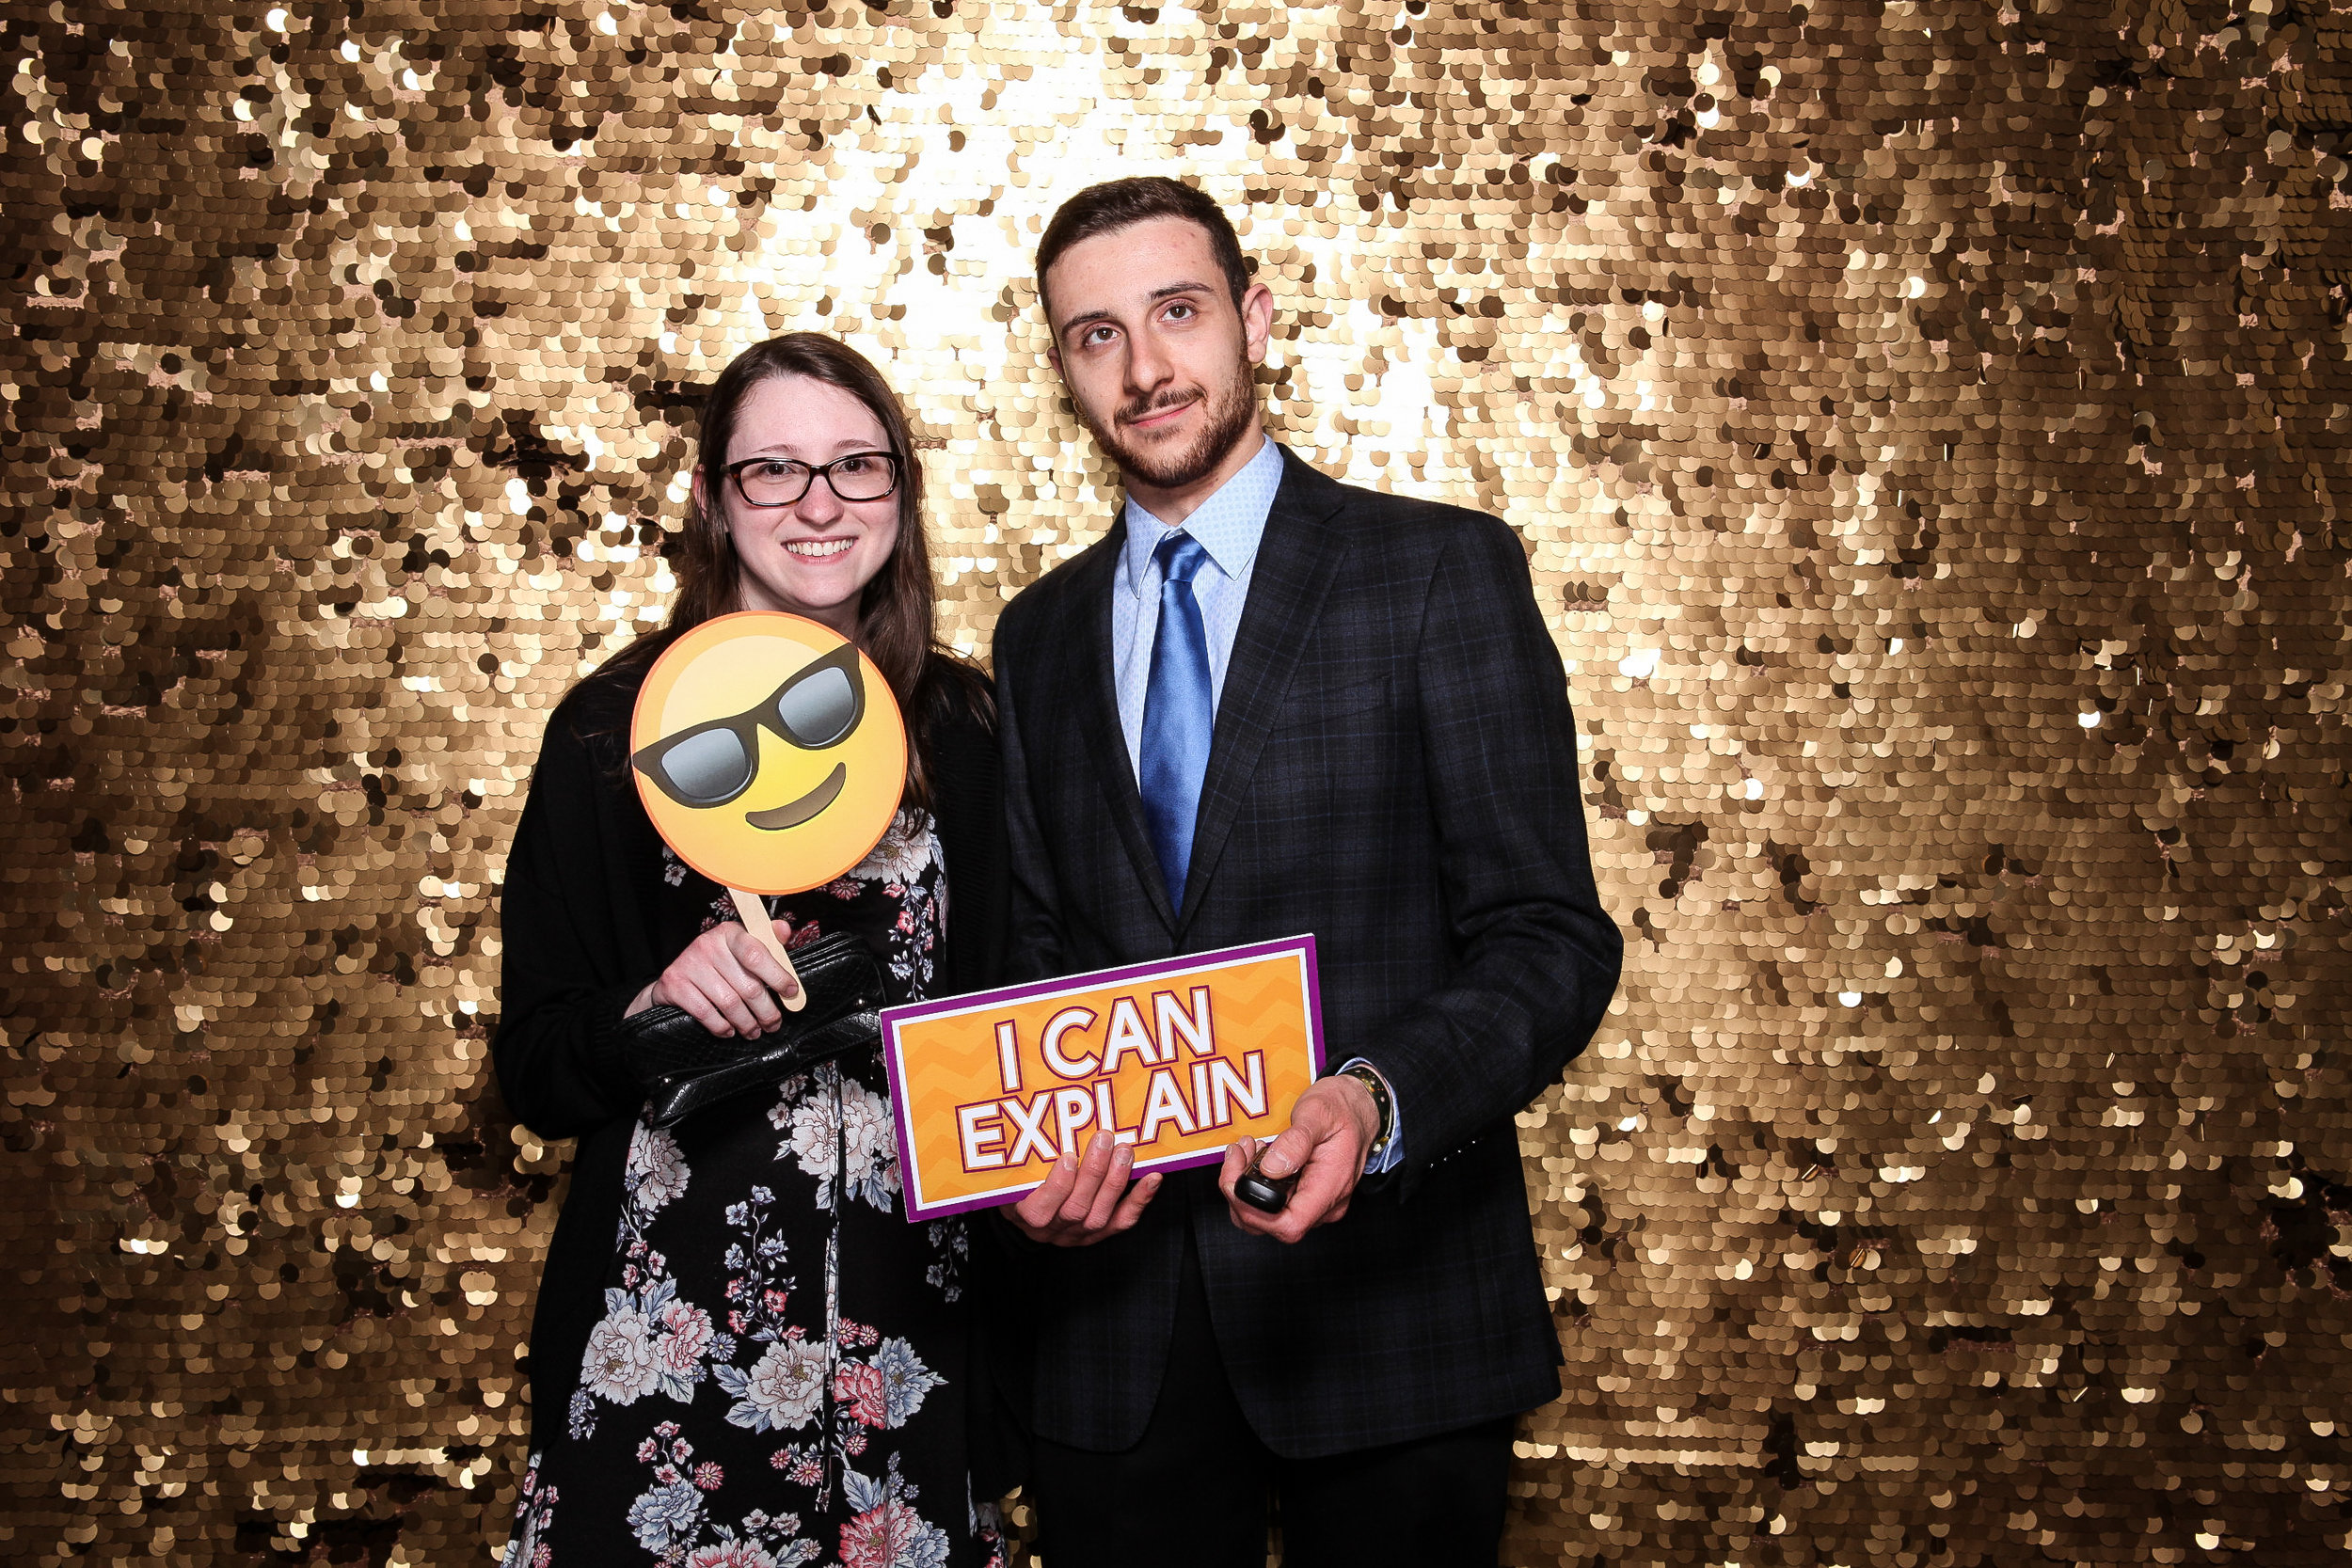 20190503_Adelphi_Senior_Formal-205.jpg